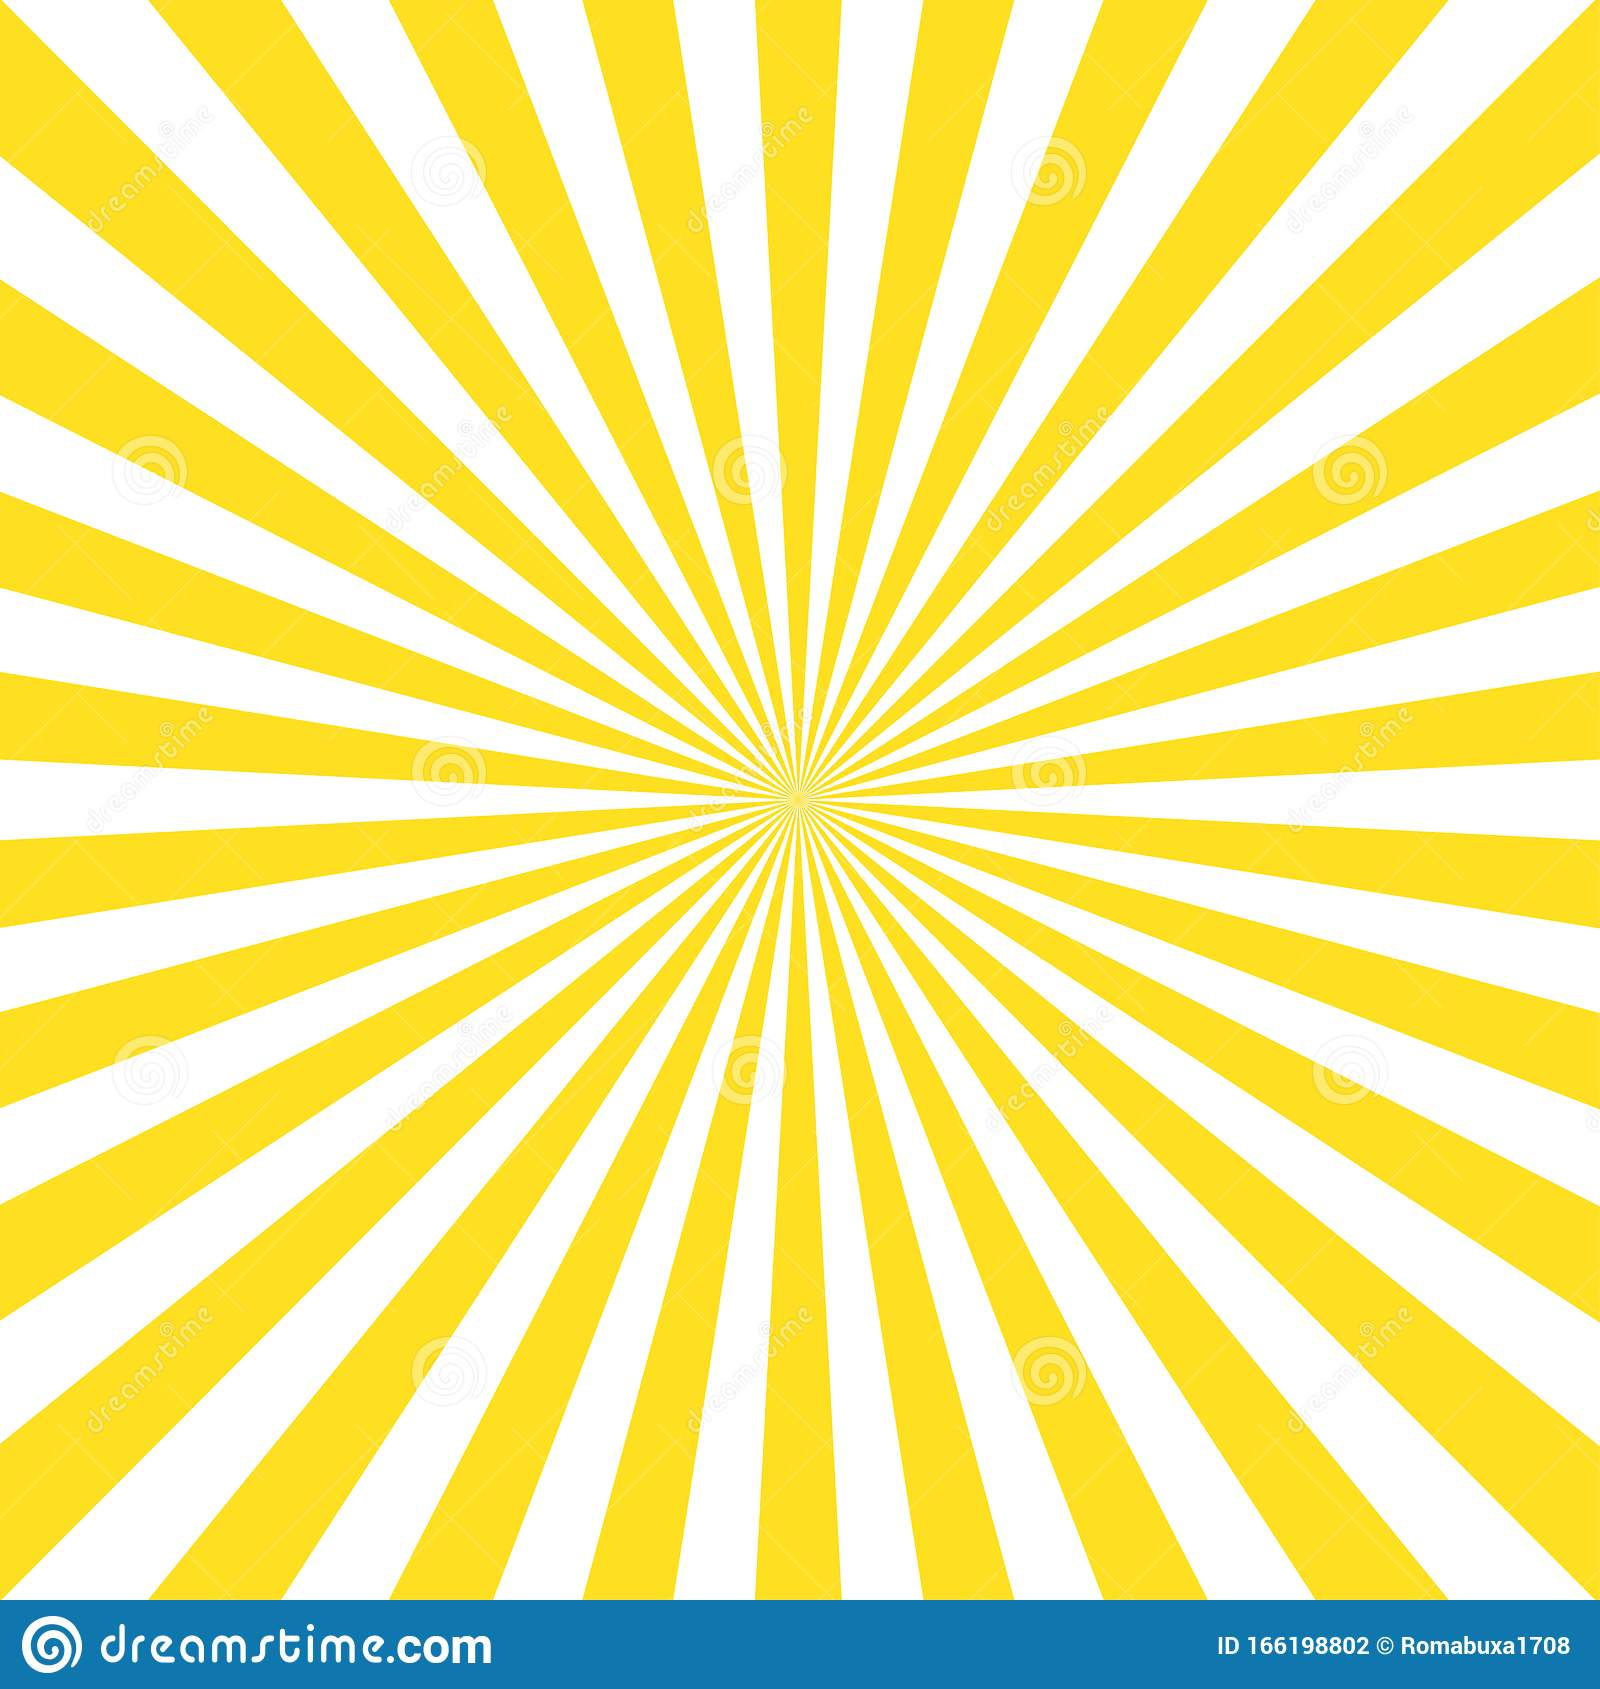 Vintage Abstract Template With Yellow Sunrays On Light